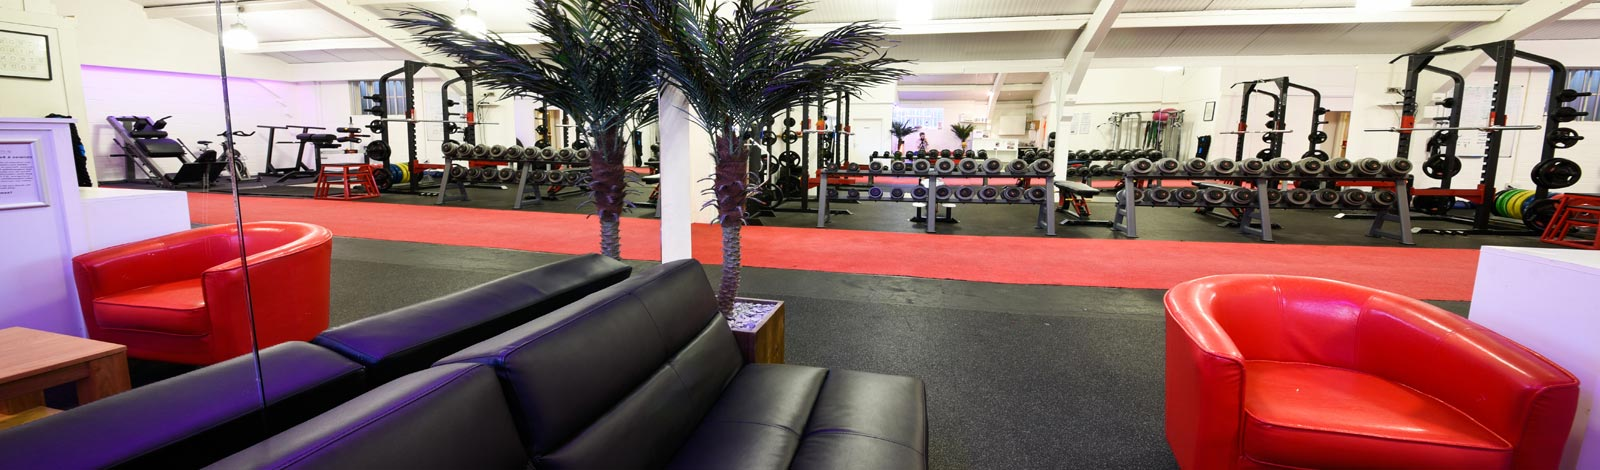 Personal training gym in Tunbridge Wells